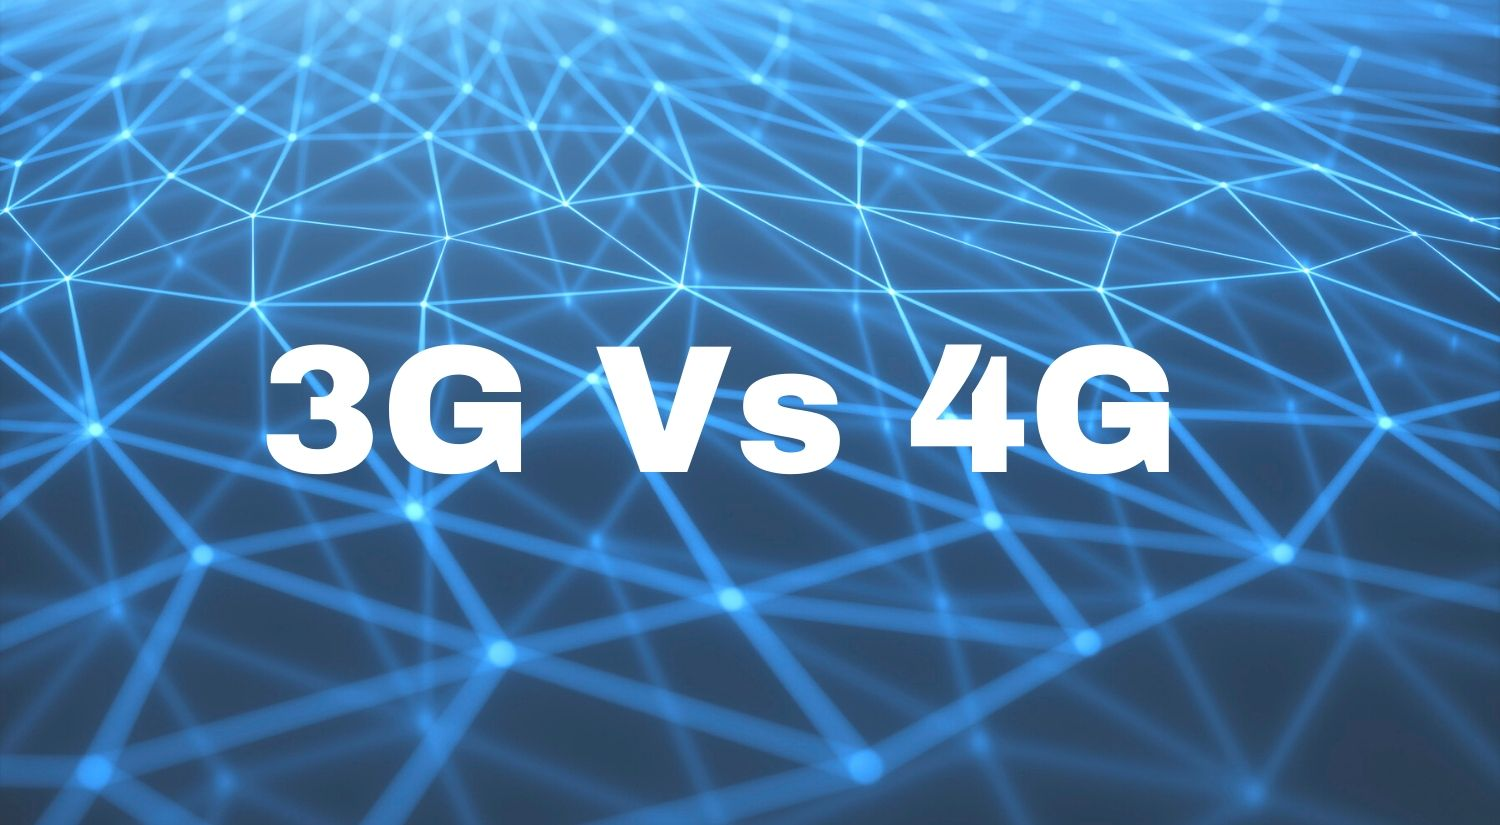 3G vs 4G mobile network